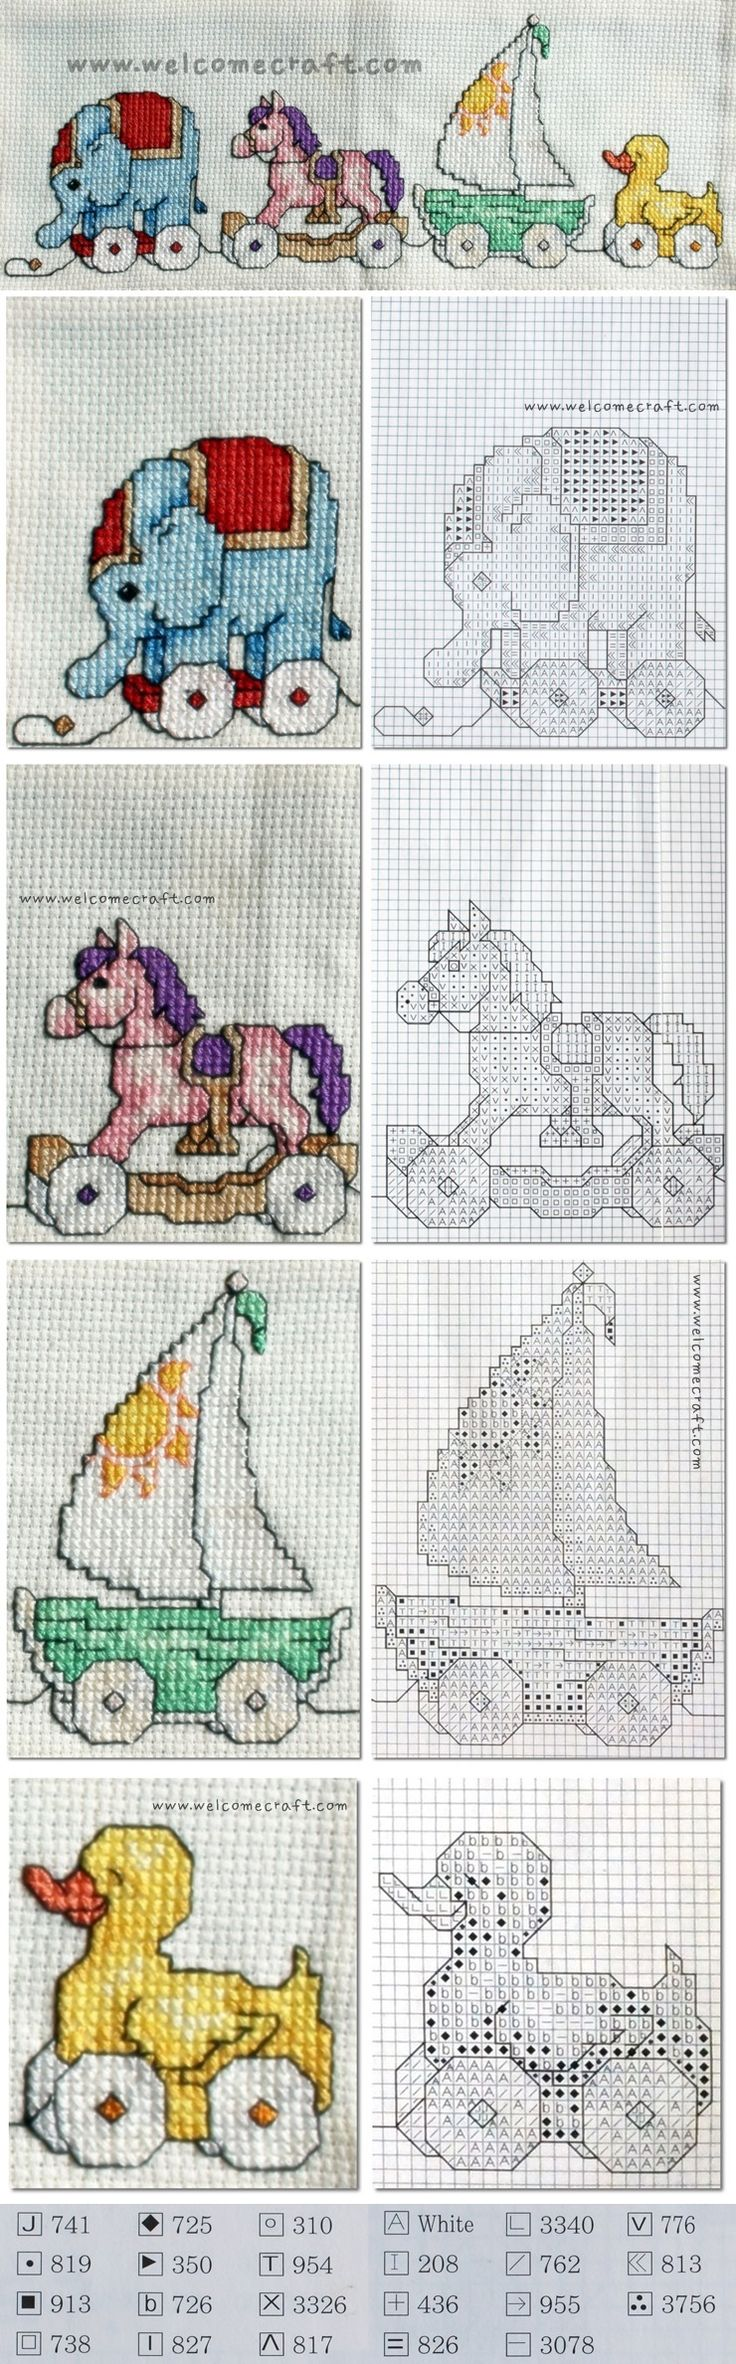 Cross Stitch Pillow Pattern                                                                                                                                                                                 More